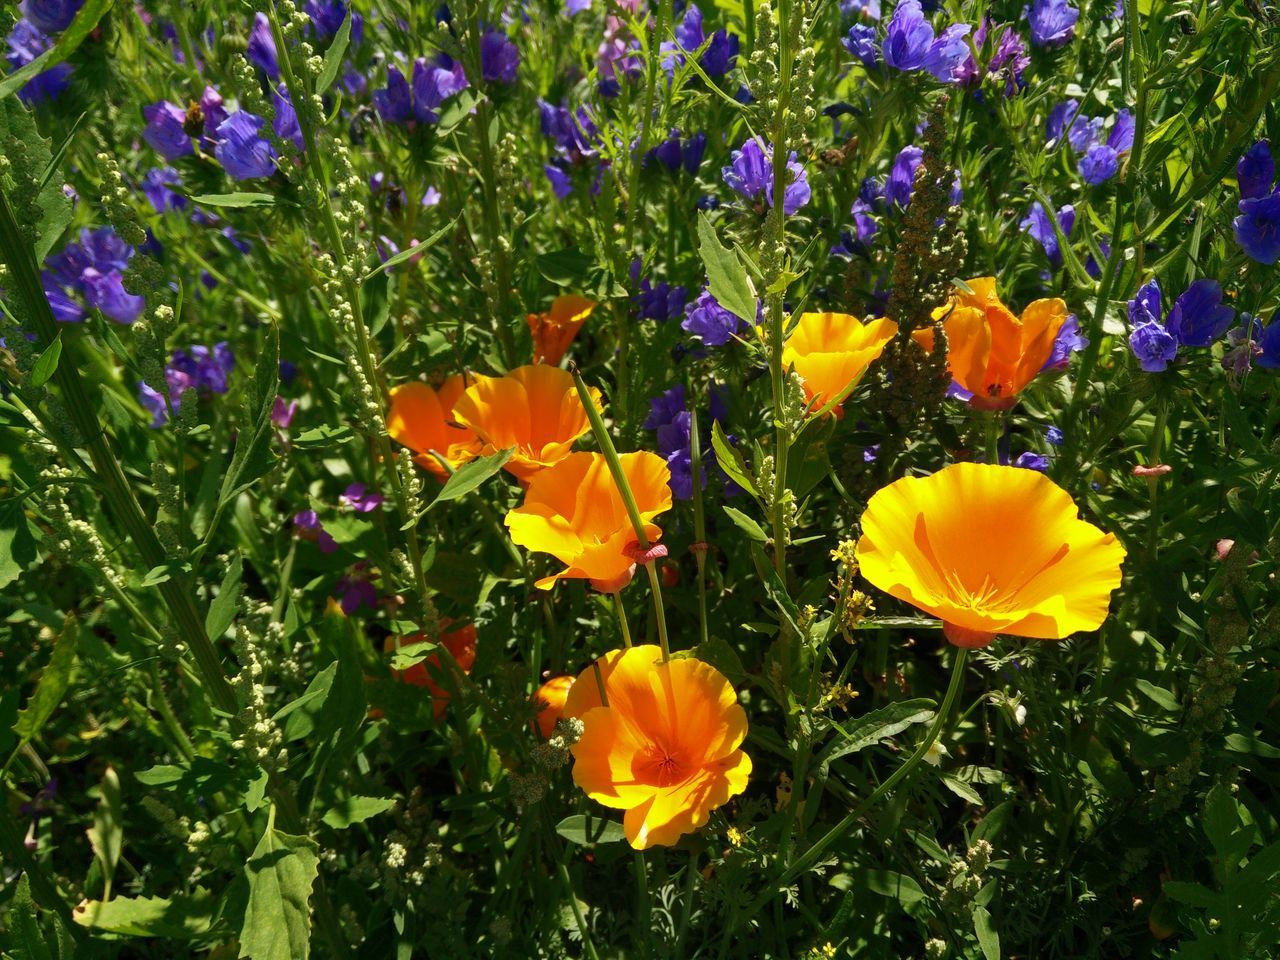 Yellow Poppies  Yellow Poppies Yellow And Purple Summer Flowers Gelb Und Lila Gelber Mohn Gelbe Mohnblumen Sommerwiese Hochsommer Wild Flowers Wildblumenwiese Wildblumen Blumenwiese